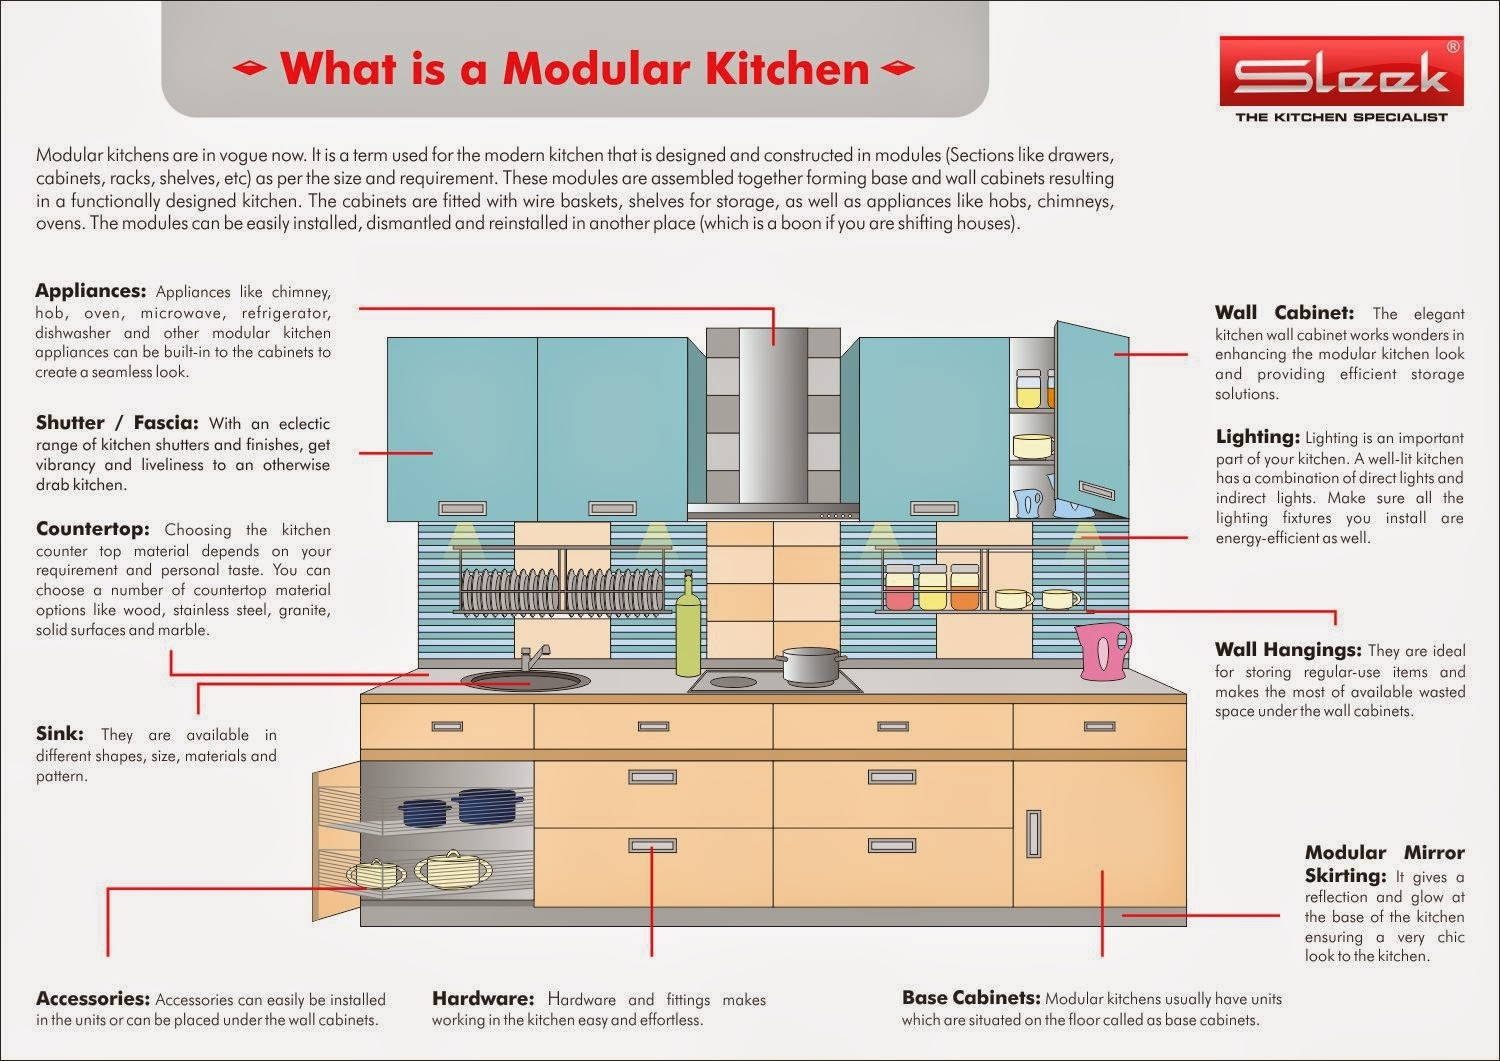 What is a modular kitchen | How to Maintain Modular Kitchen by SLEEK ...